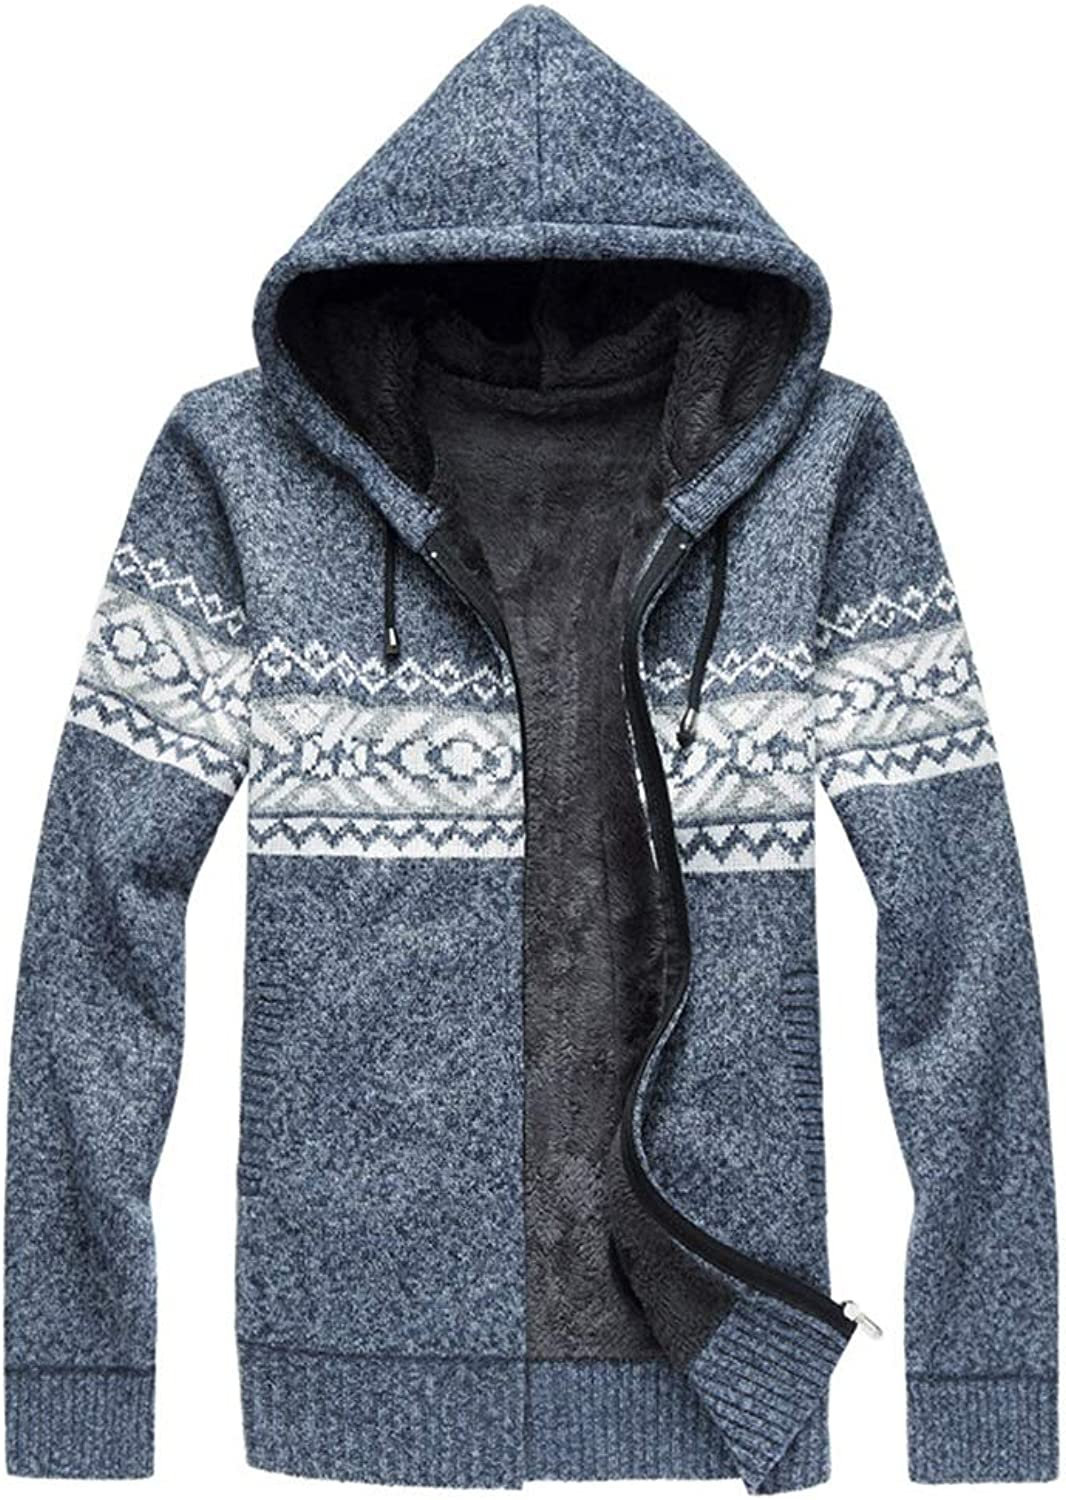 14ef7fdca Men's Sweater, Contrast Printed Printed Printed Cardigan Hooded Large Size  Coat Slim Fashion Zip Sweatshirt Autumn and Winter Hoodie (color B) 769ae1